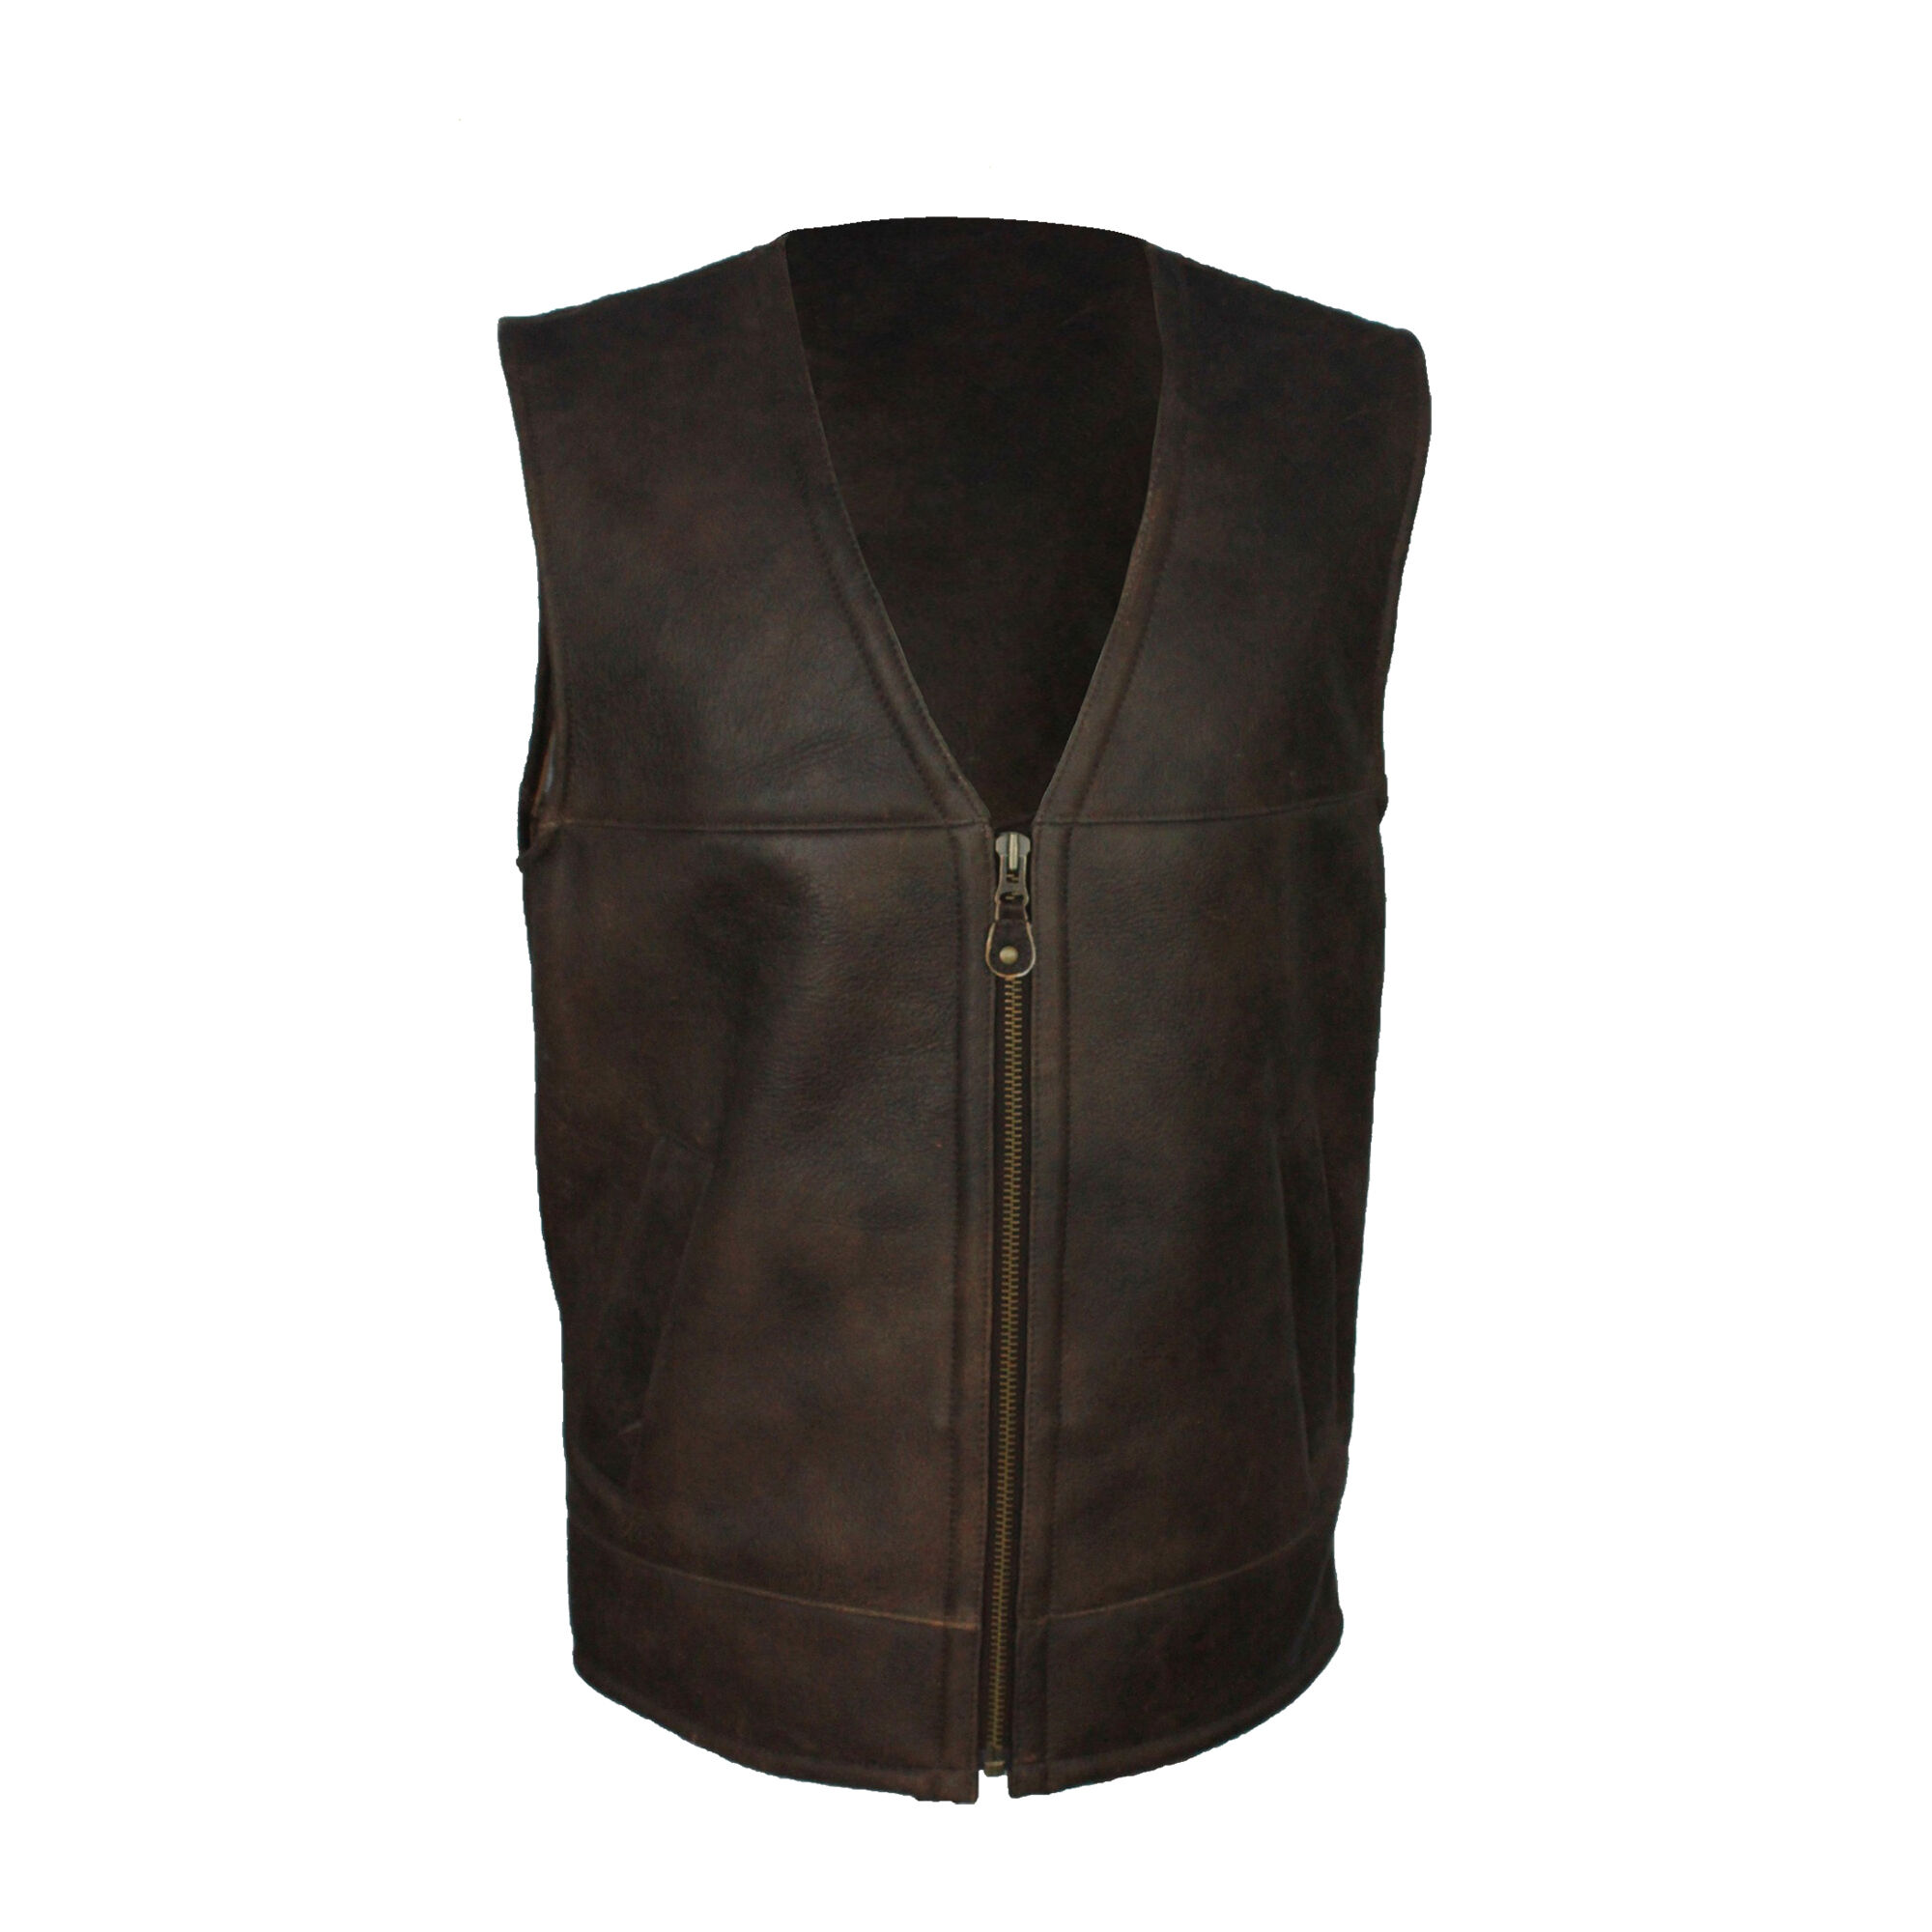 Eastern Counties Leather - Gilet Sans Manches En Cuir - Homme (Marron chocolat) - UTEL176